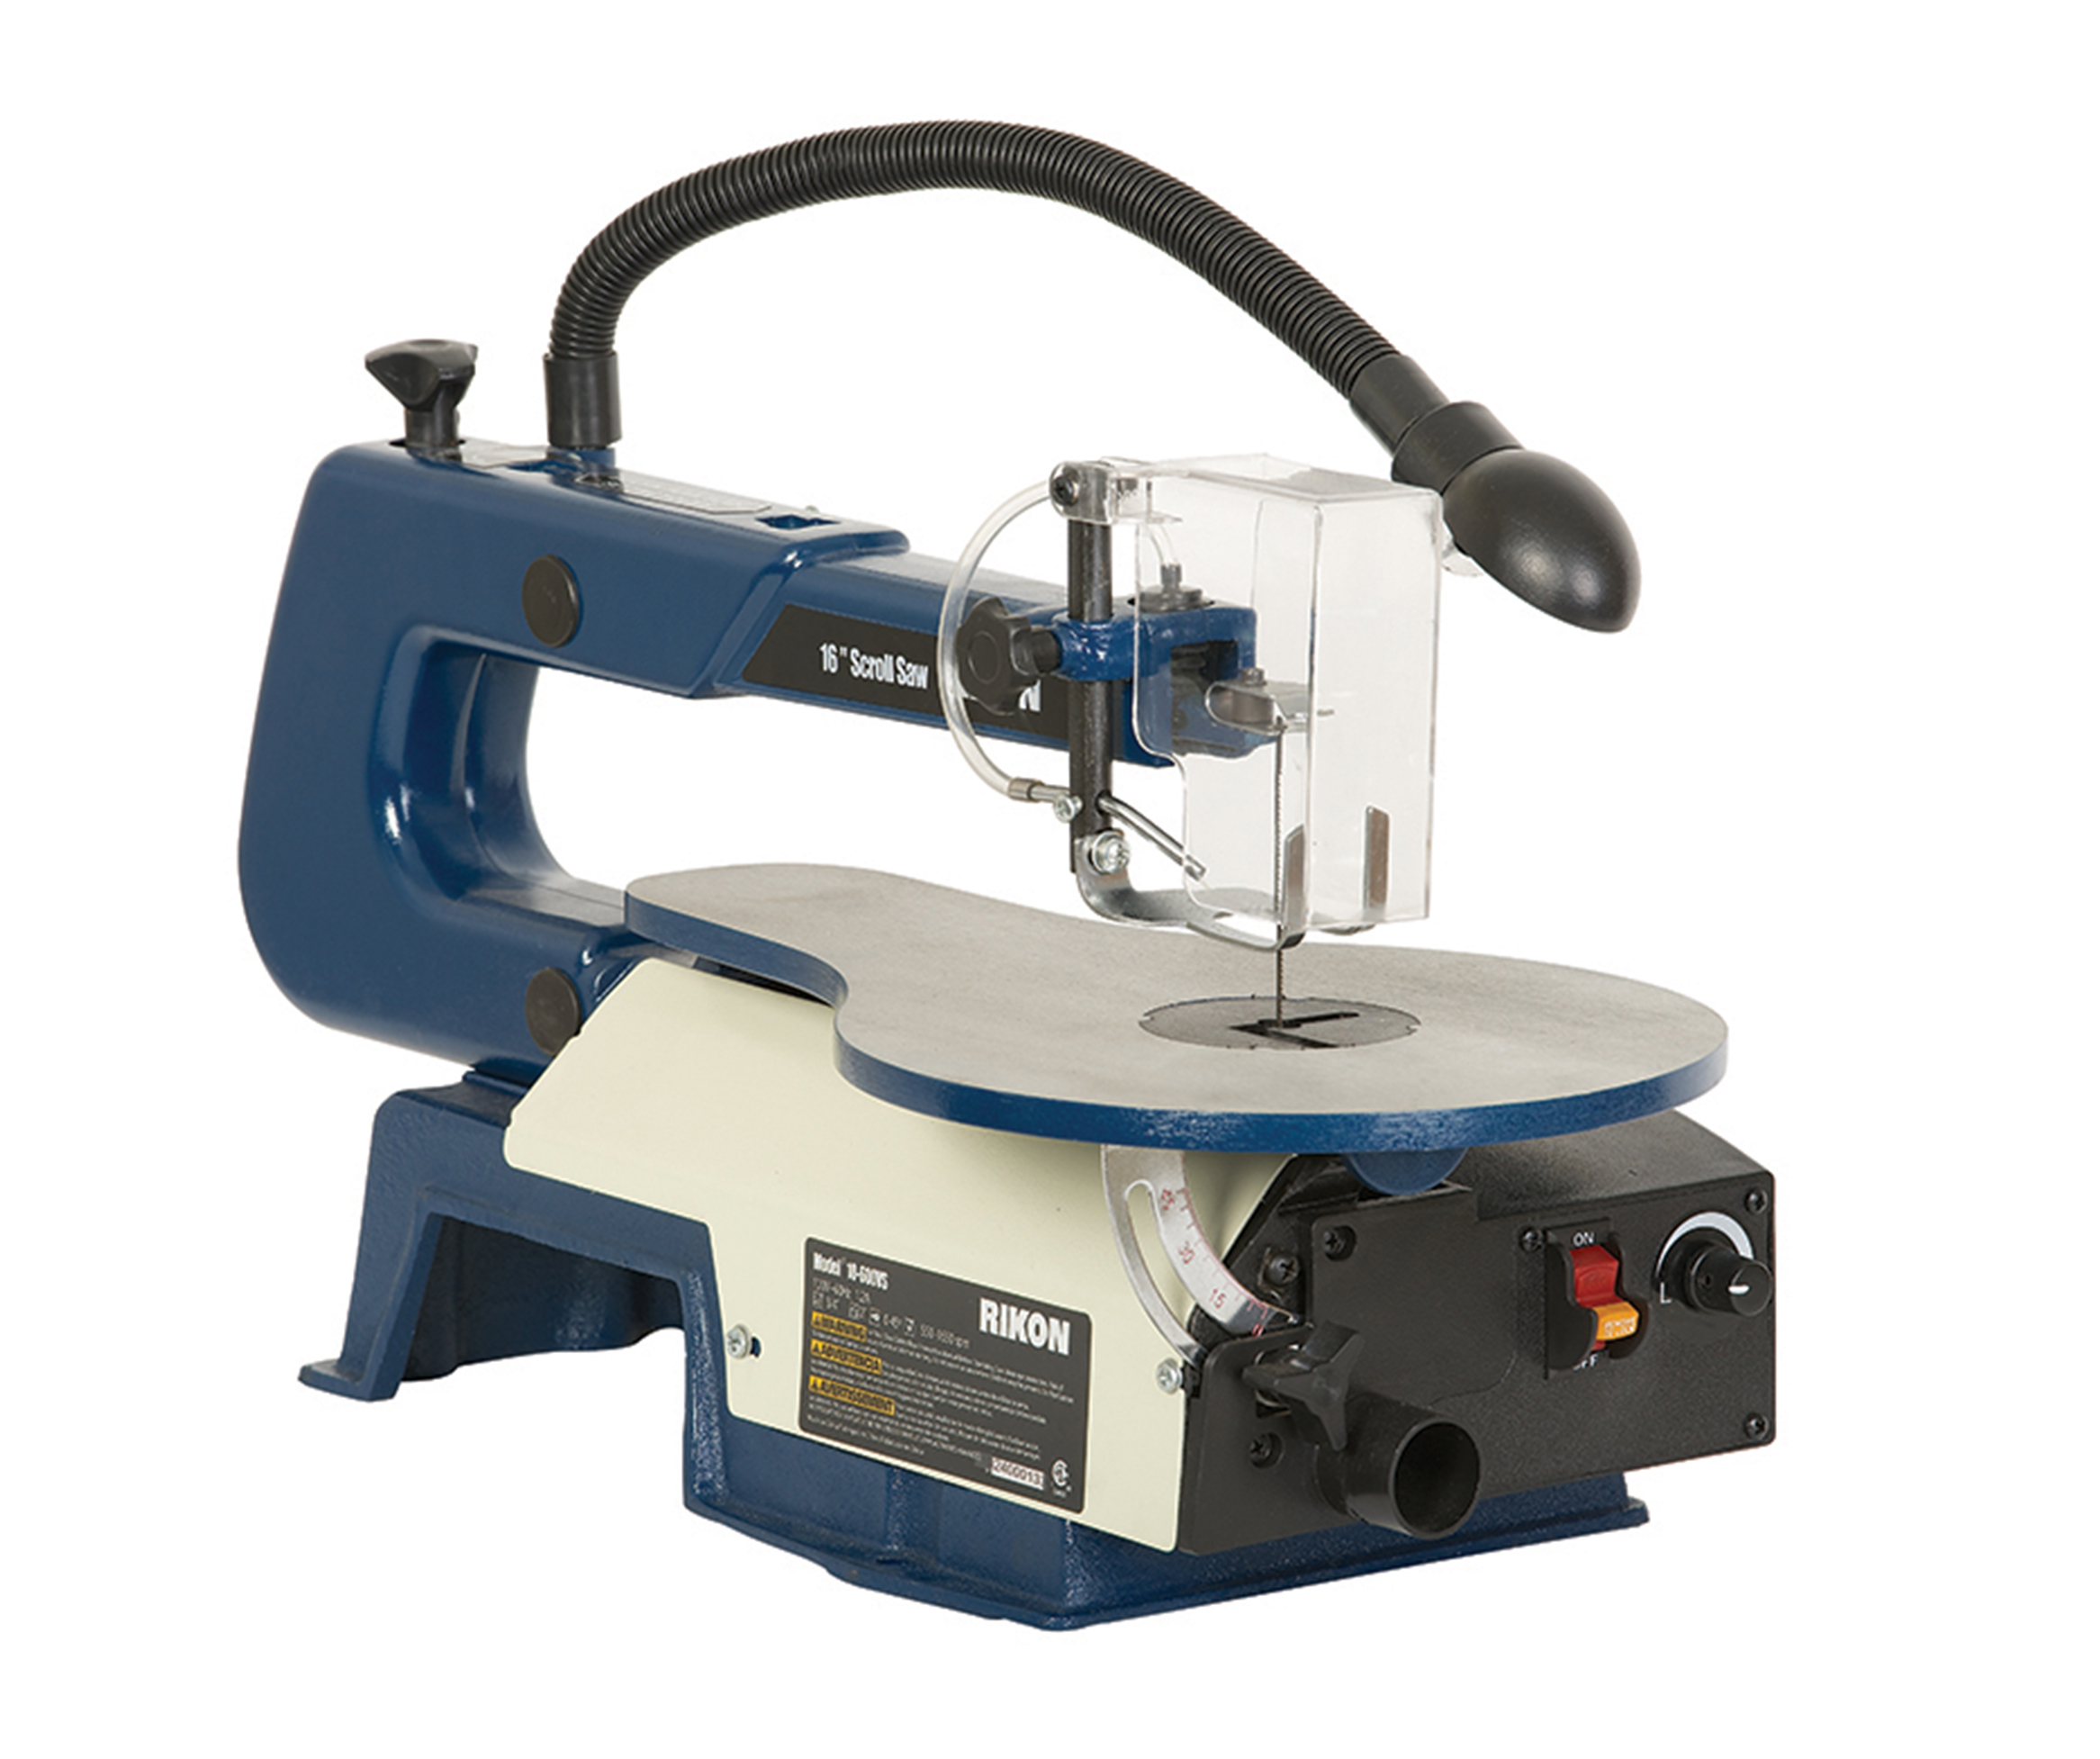 Model 10 600vs 16 Quot Variable Speed Scroll Saw Rikon